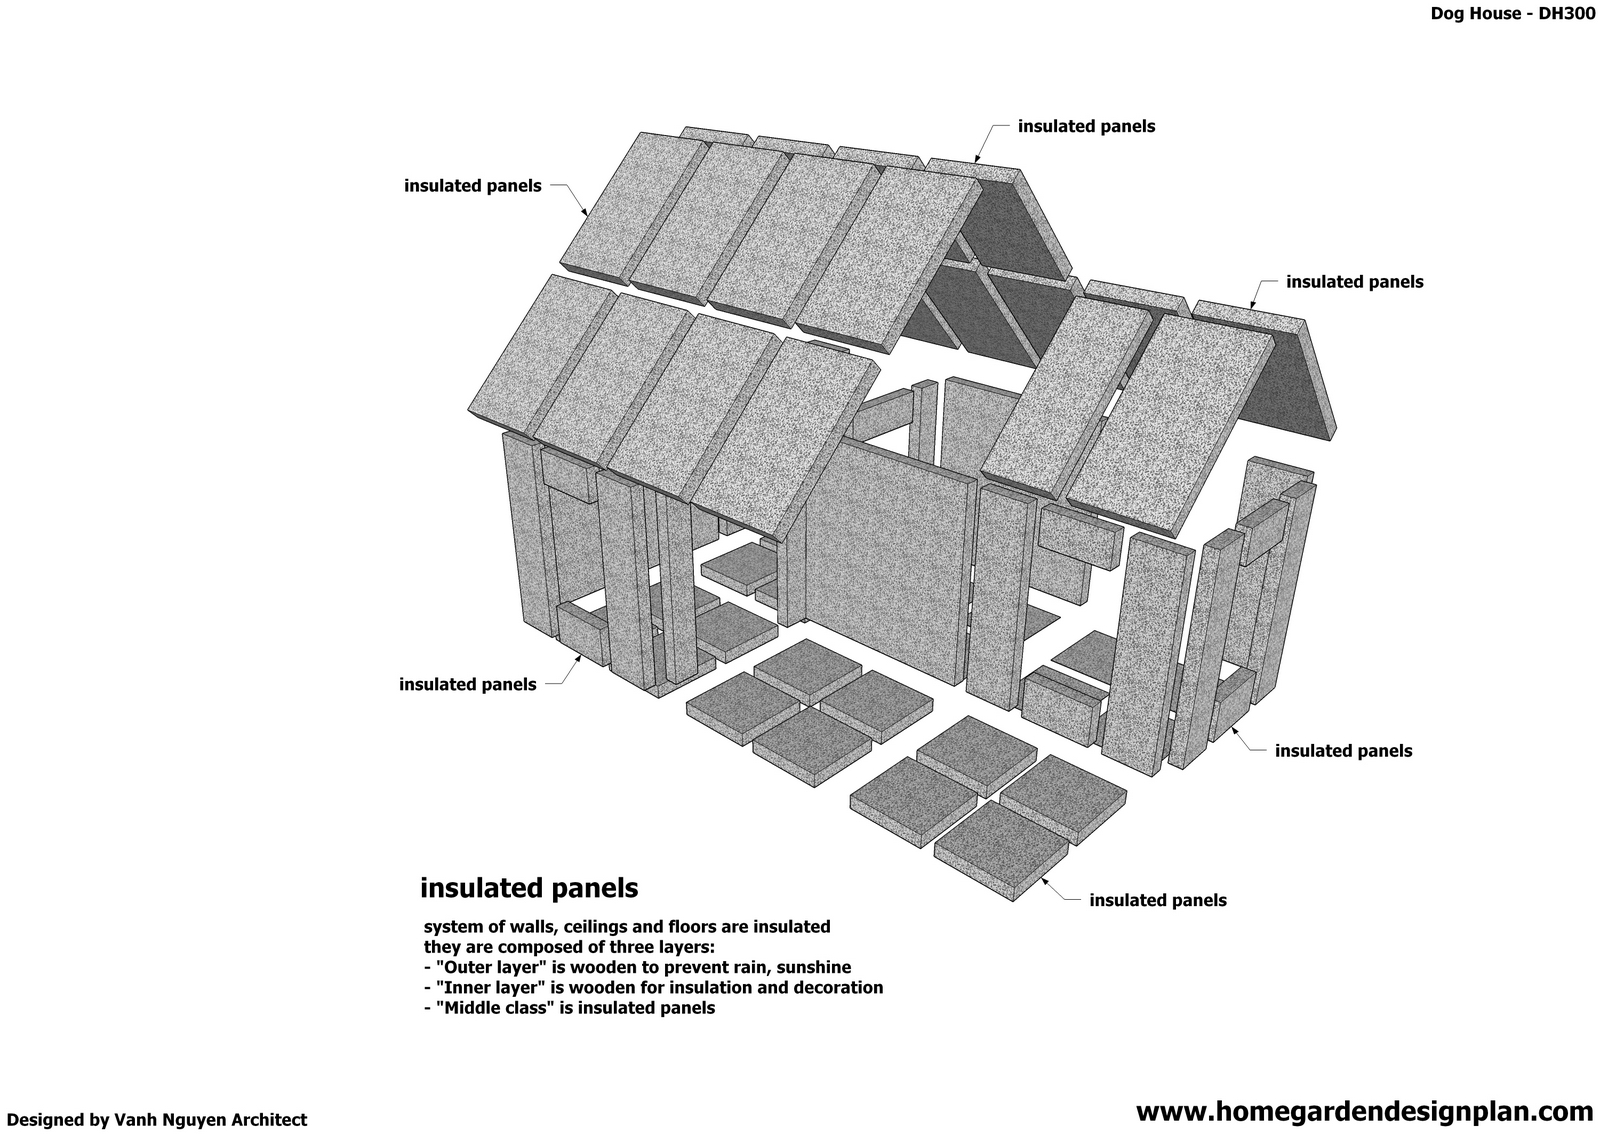 Woodwork plans for wood dog house pdf plans for Insulated dog house plans pdf